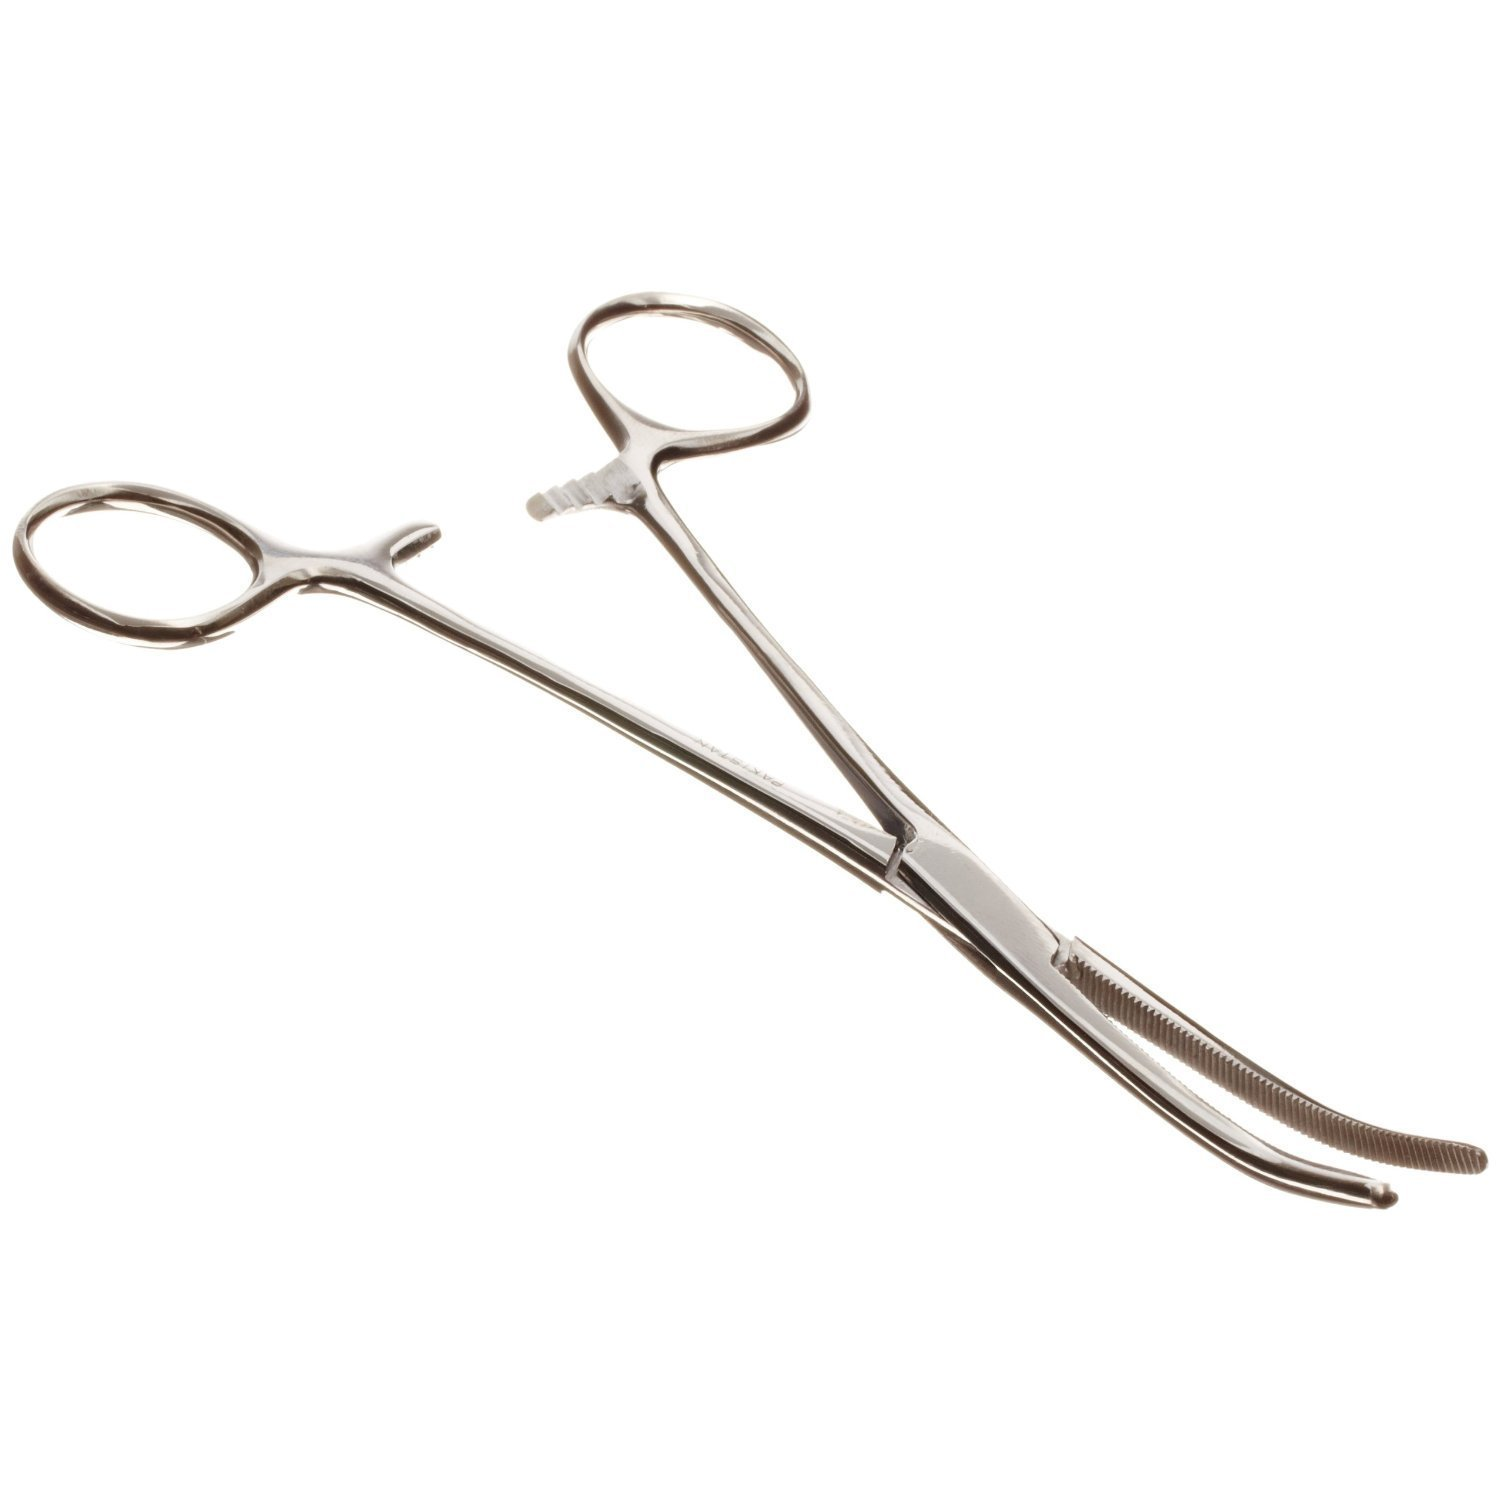 6 inch straight and bent hemostat forceps